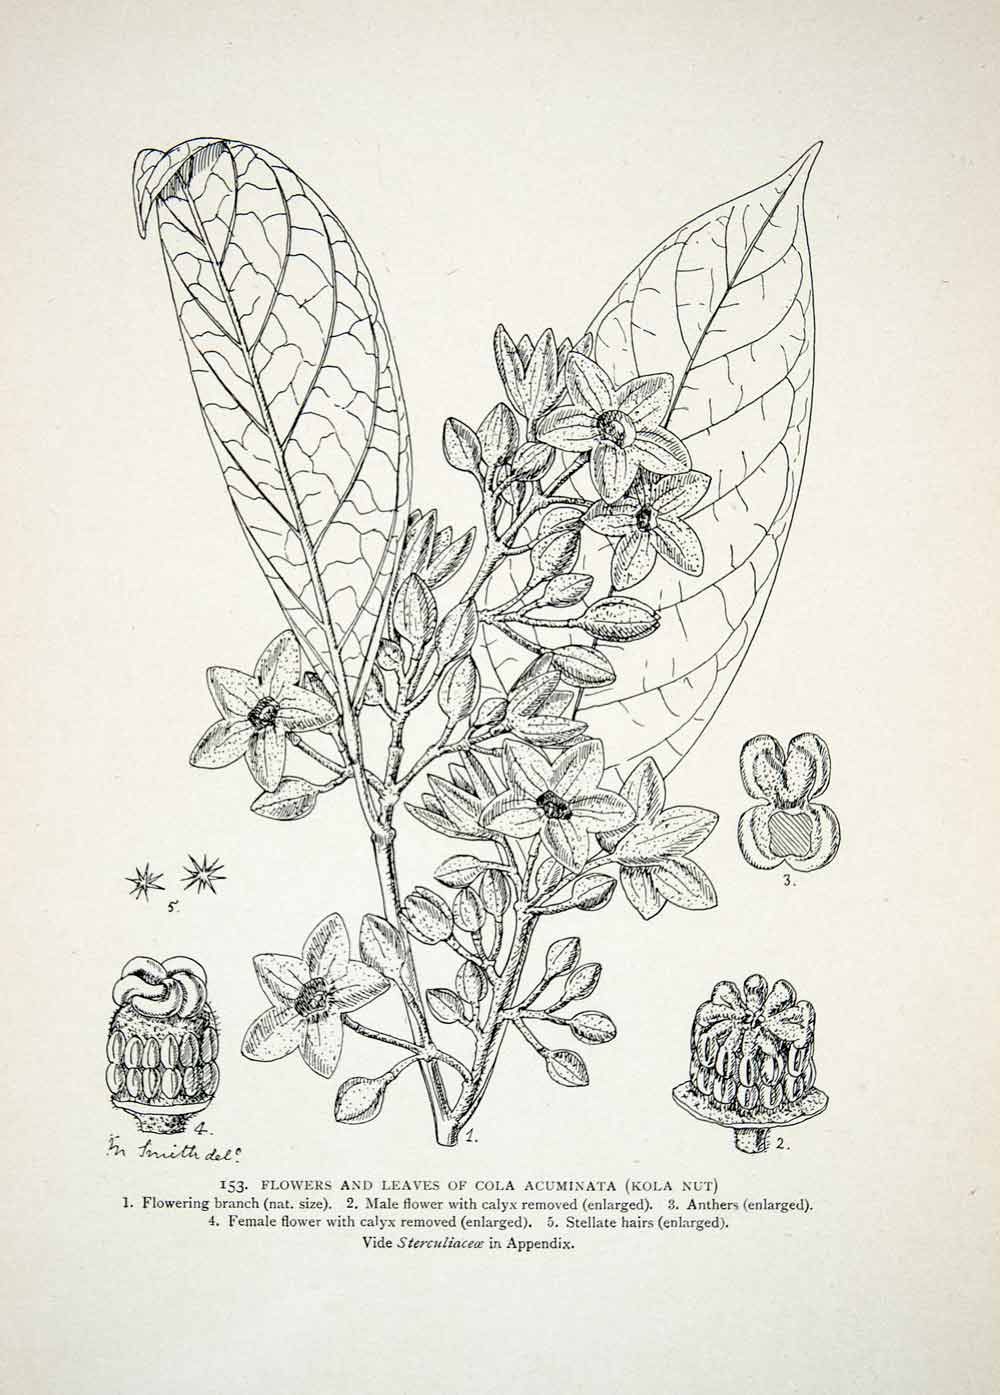 1906 Lithograph Matilda Smith Botanical Art Cola Acuminata Kola Nut Plant XGQB5